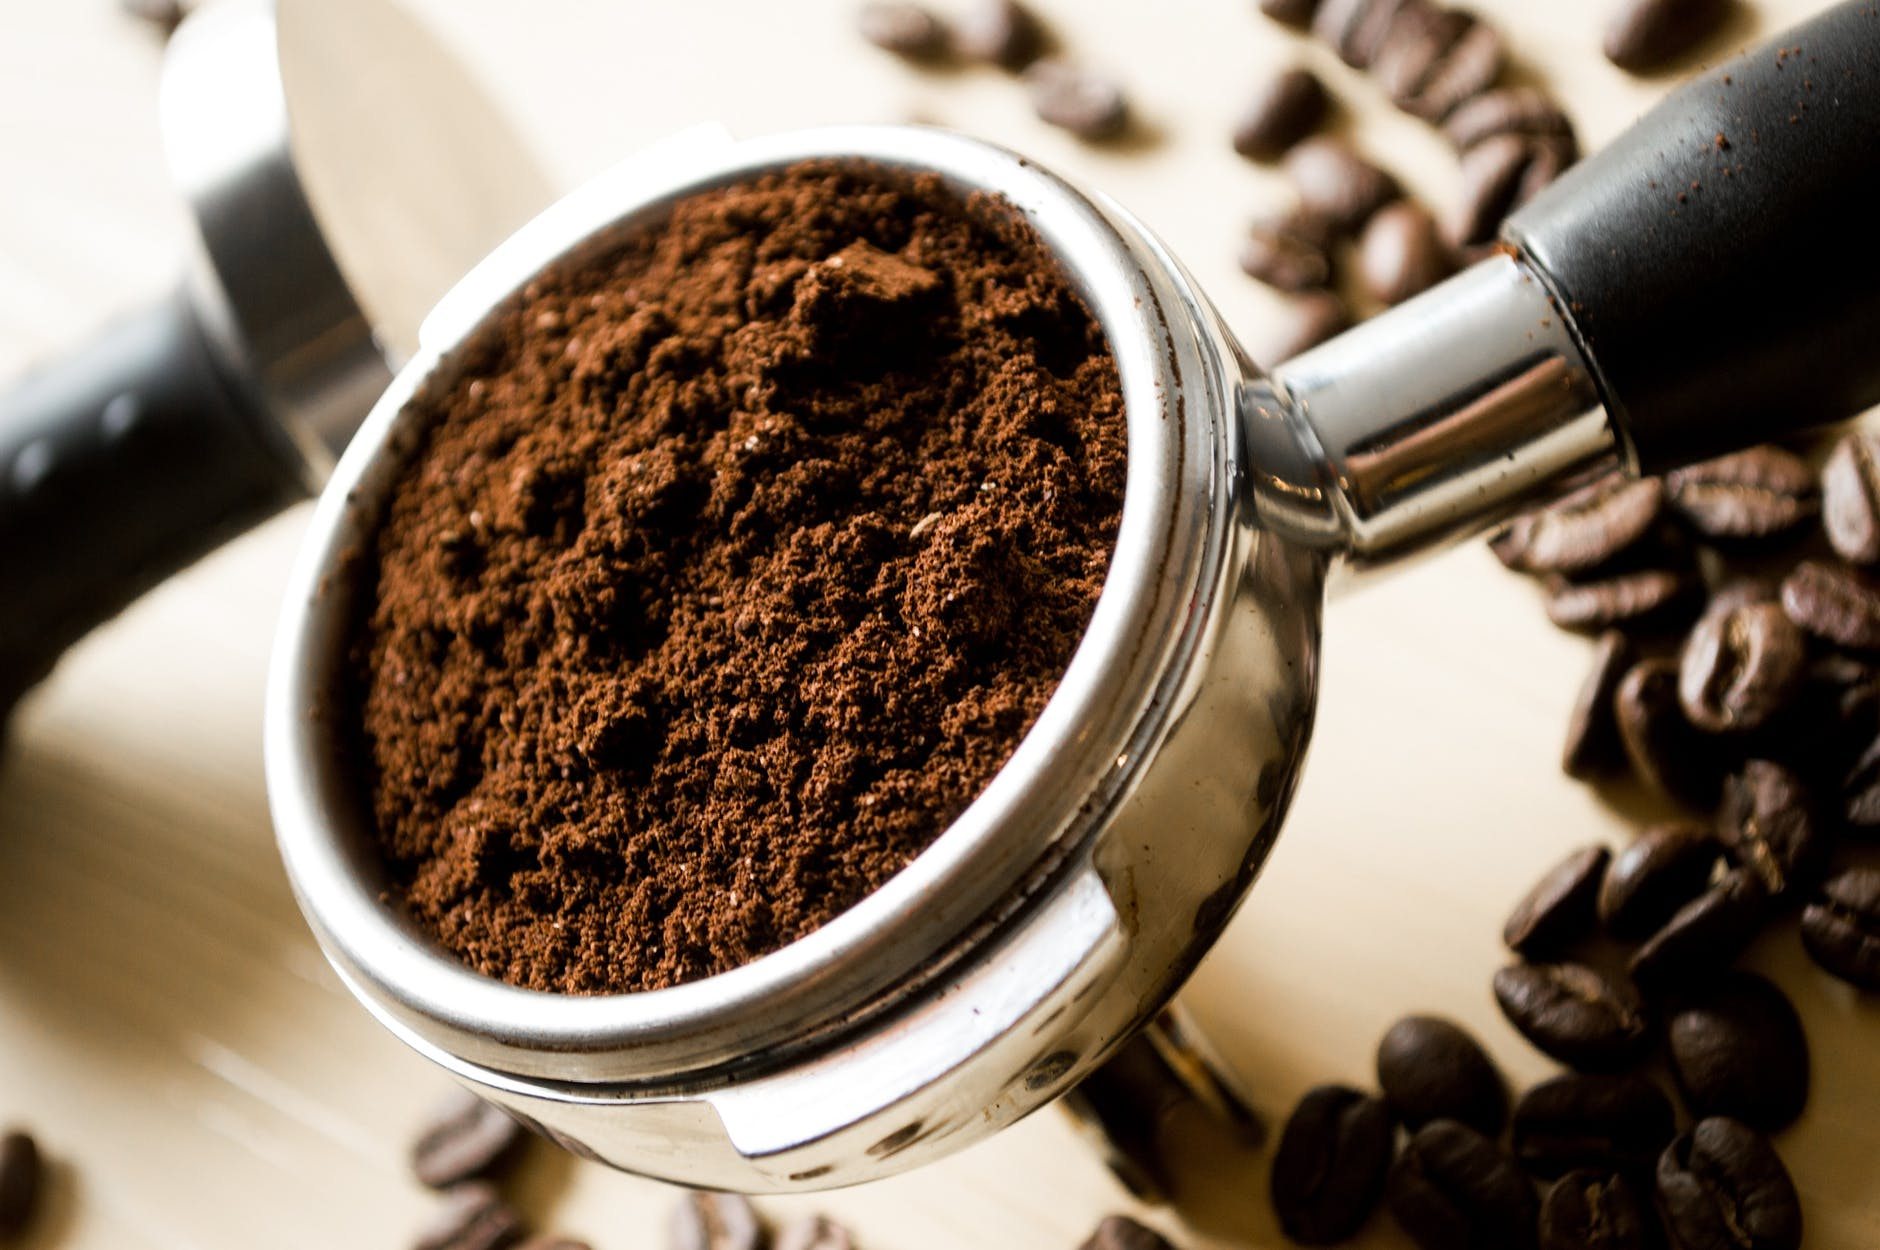 Can You Reuse Coffee Grounds To Make More Coffee?